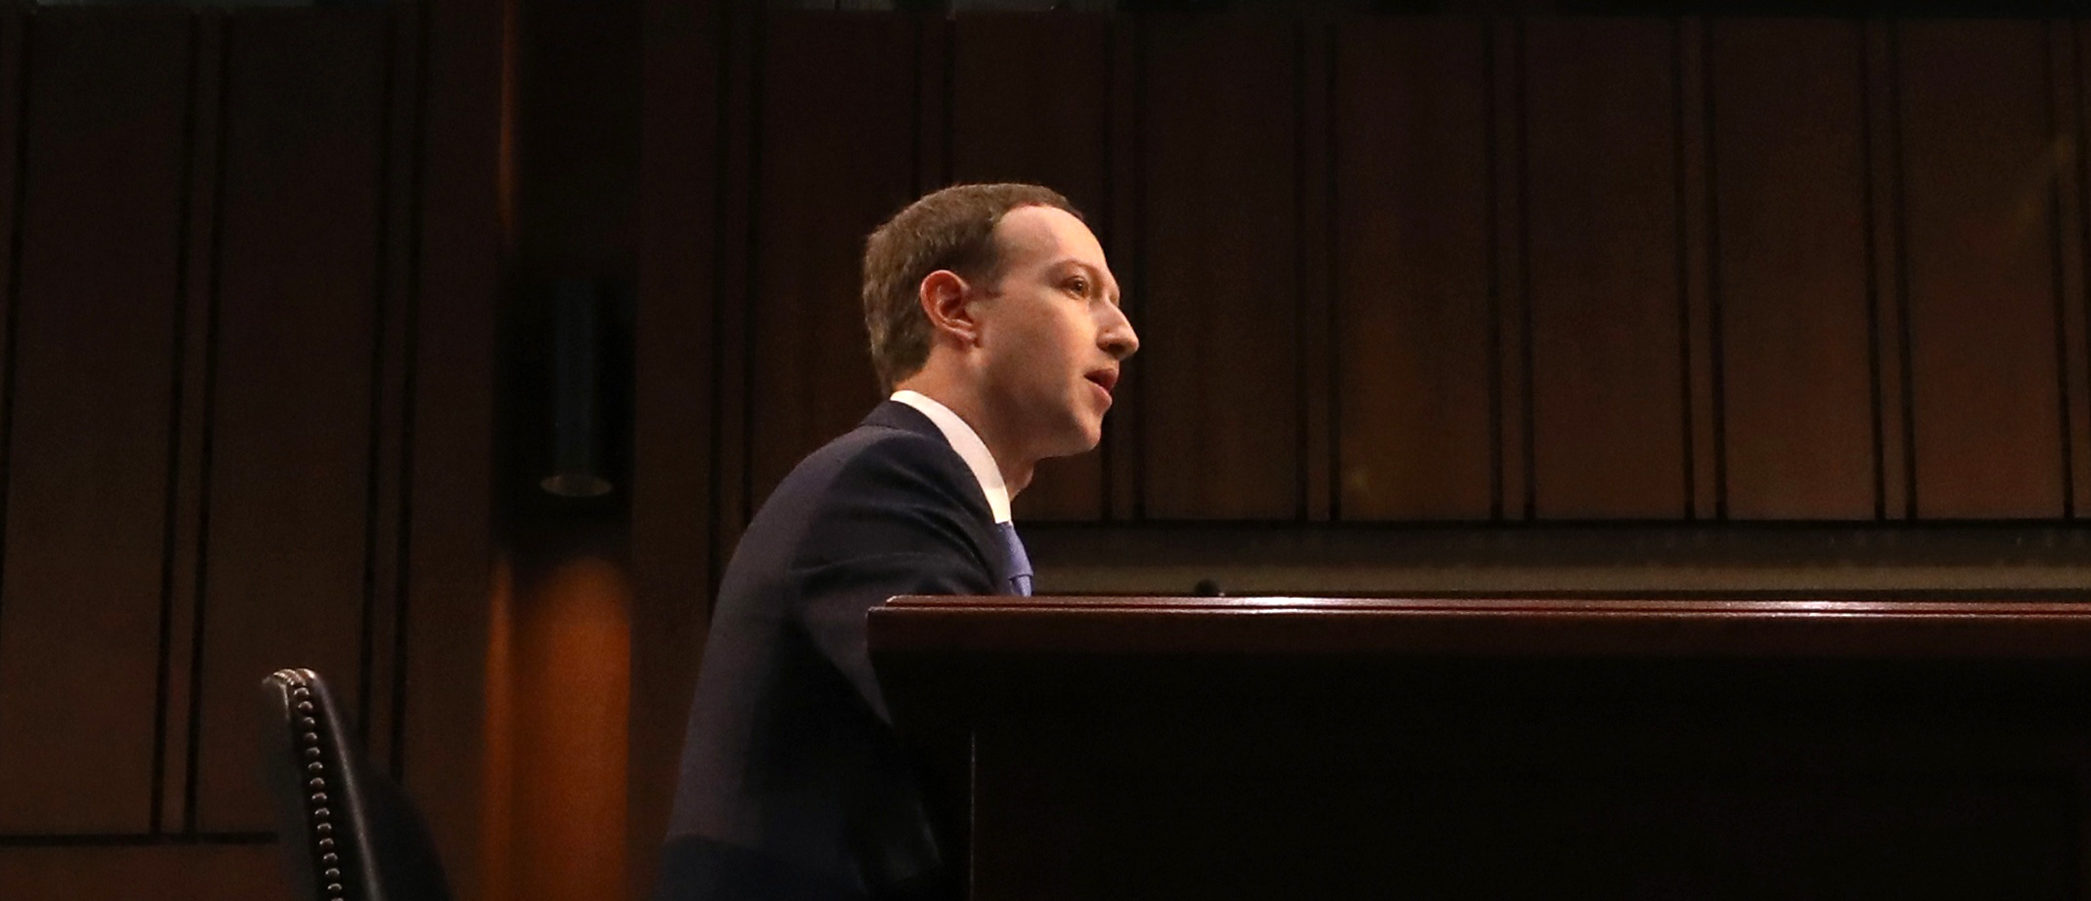 Facebook CEO Mark Zuckerberg testifies before a joint Senate Judiciary and Commerce Committees hearing regarding the company's use and protection of user data, on Capitol Hill in Washington, U.S., April 10, 2018. REUTERS/Leah Millis   Cambridge Analytica Fights Zuck At Court